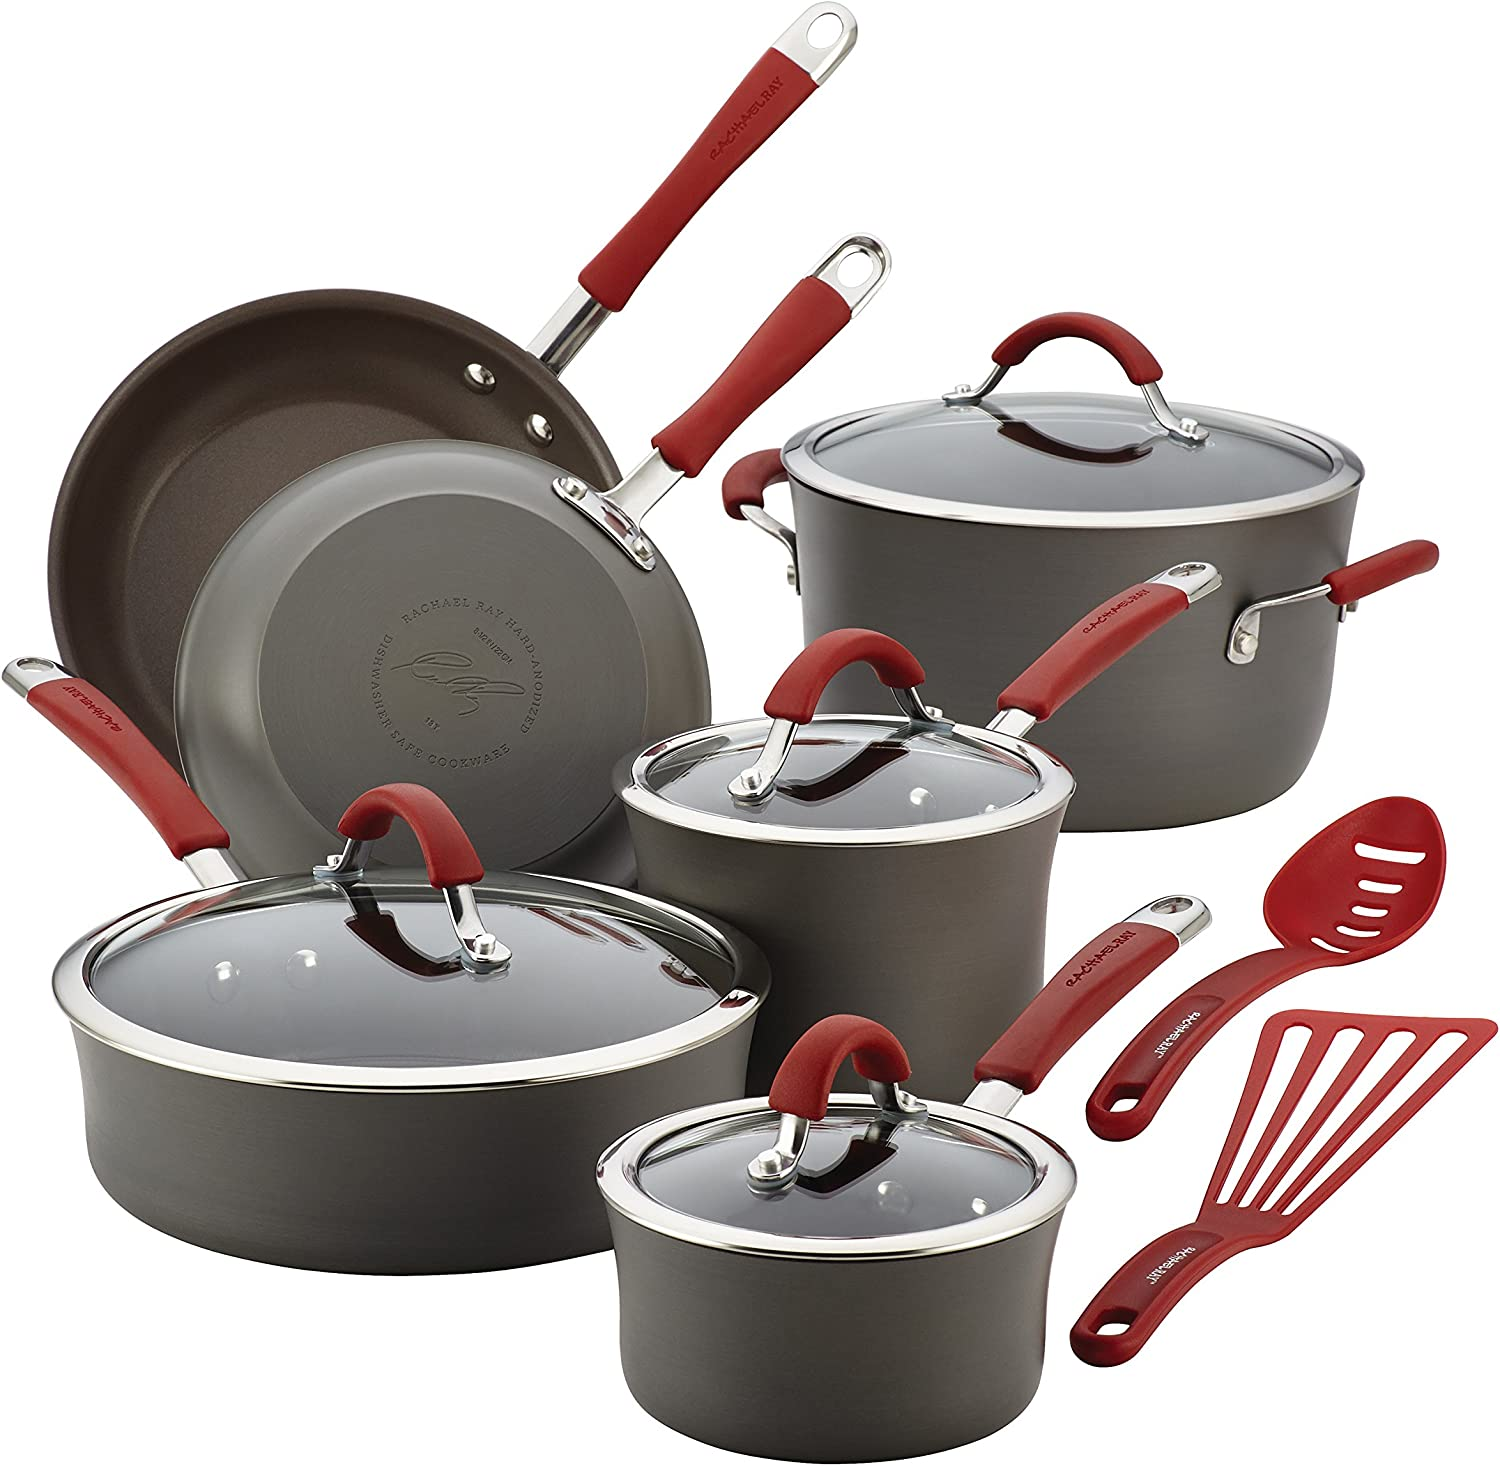 Check out 13 Discount Cookware You Must Grab on Cyber Monday at https://homemaderecipes.com/discount-kitchenware-cyber-monday/